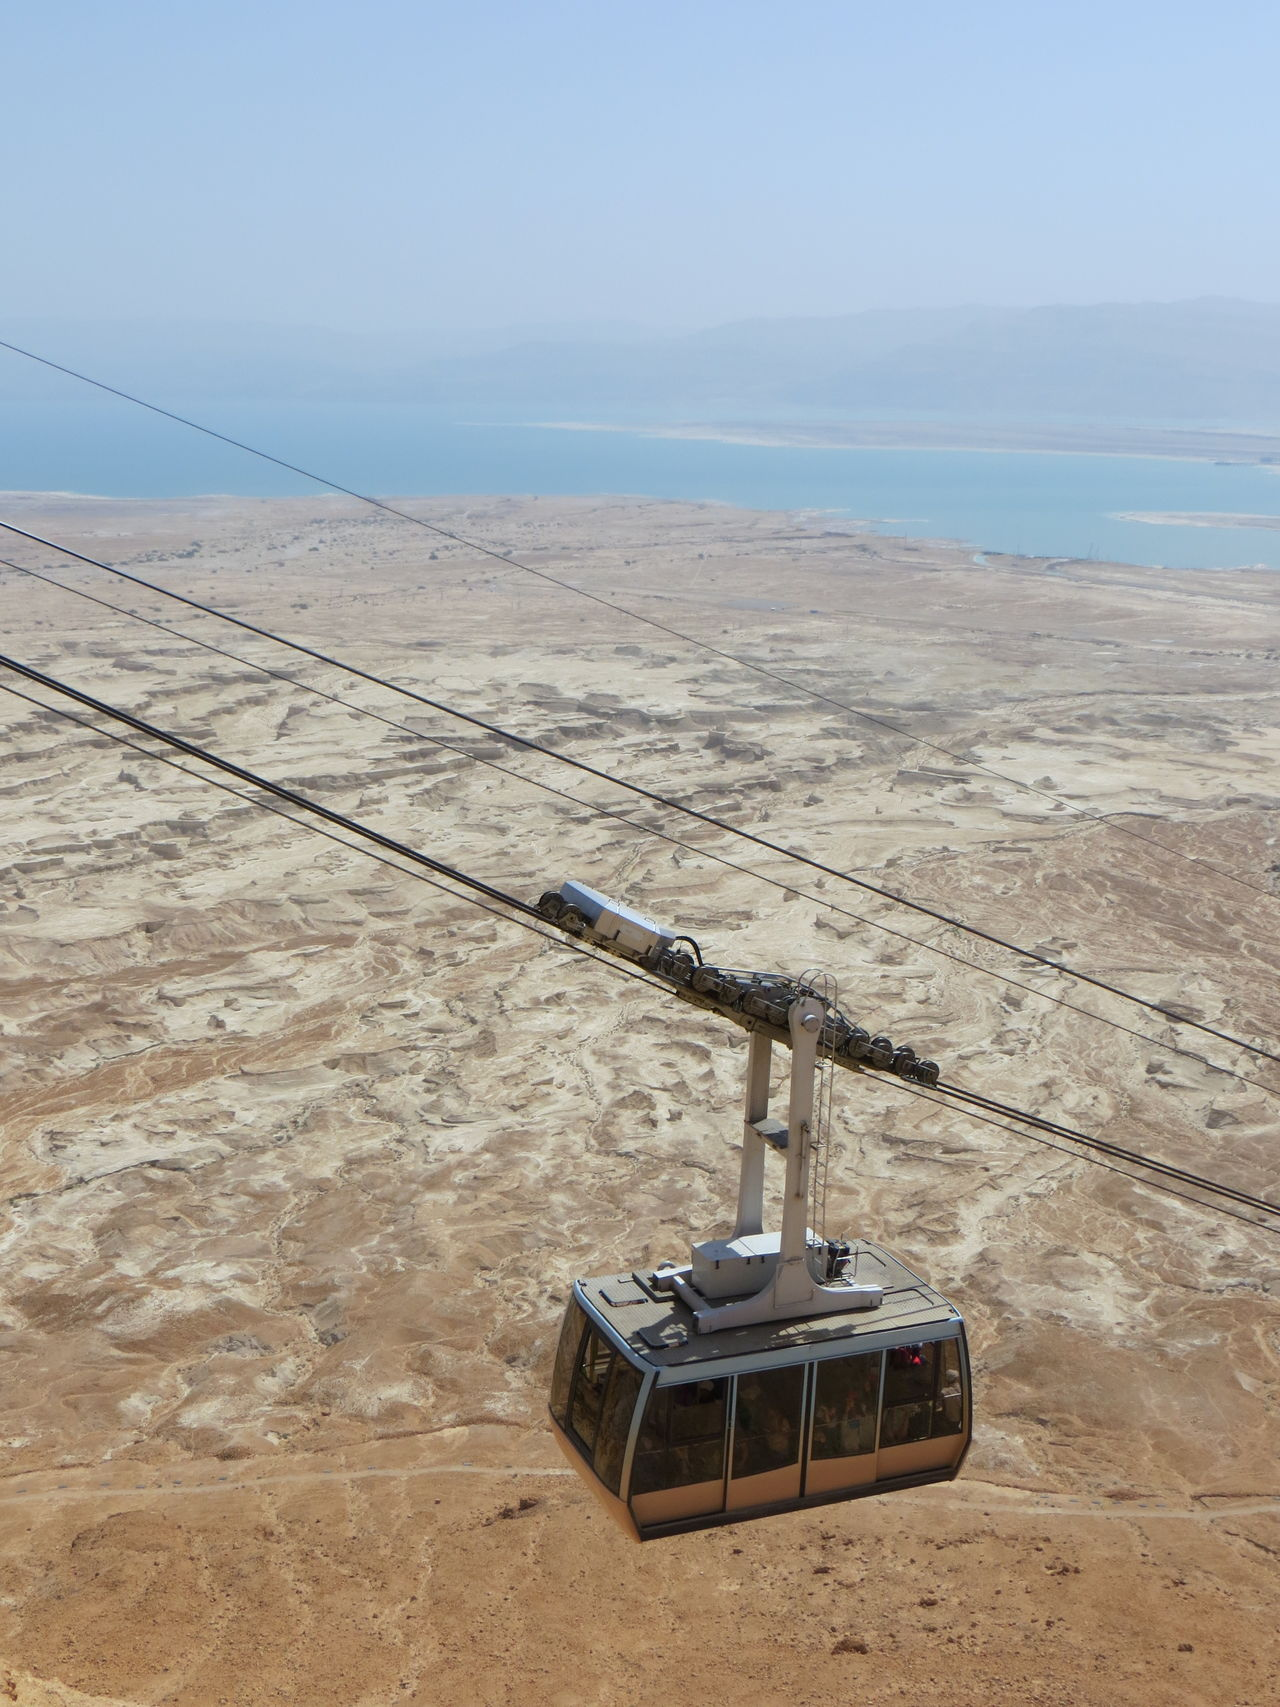 Arid Climate Composition Cropped Deadsea Distant Exploring Fishing Full Length Funicular Hobbies Israel Leisure Activity The KIOMI Collection Masada Men Mode Of Transport Outdoors Overhead View Part Of Perspective Real People Top Perspective Transportation Trip Learn & Shoot: Balancing Elements